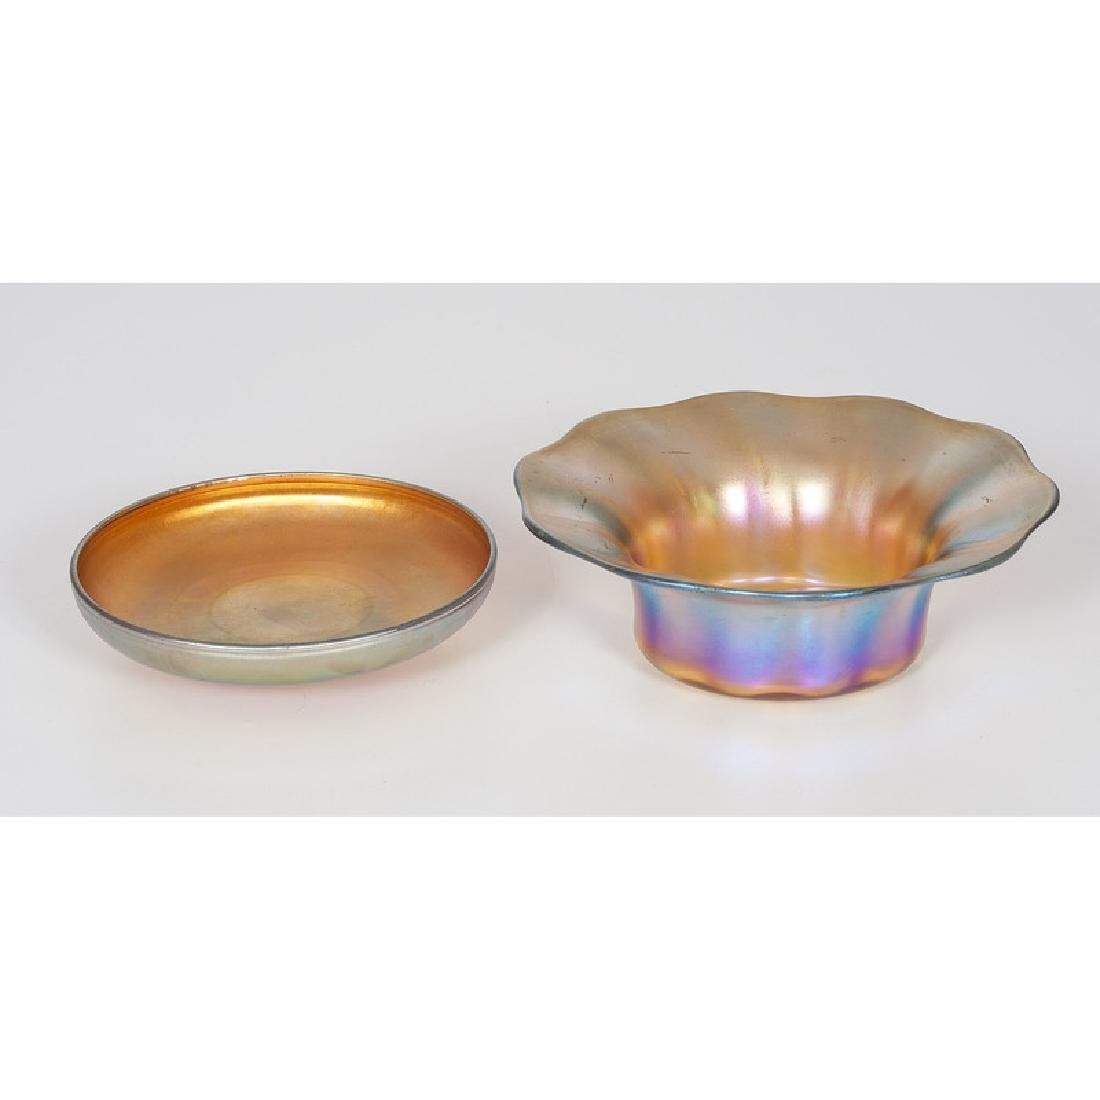 Tiffany Favrile Dishes